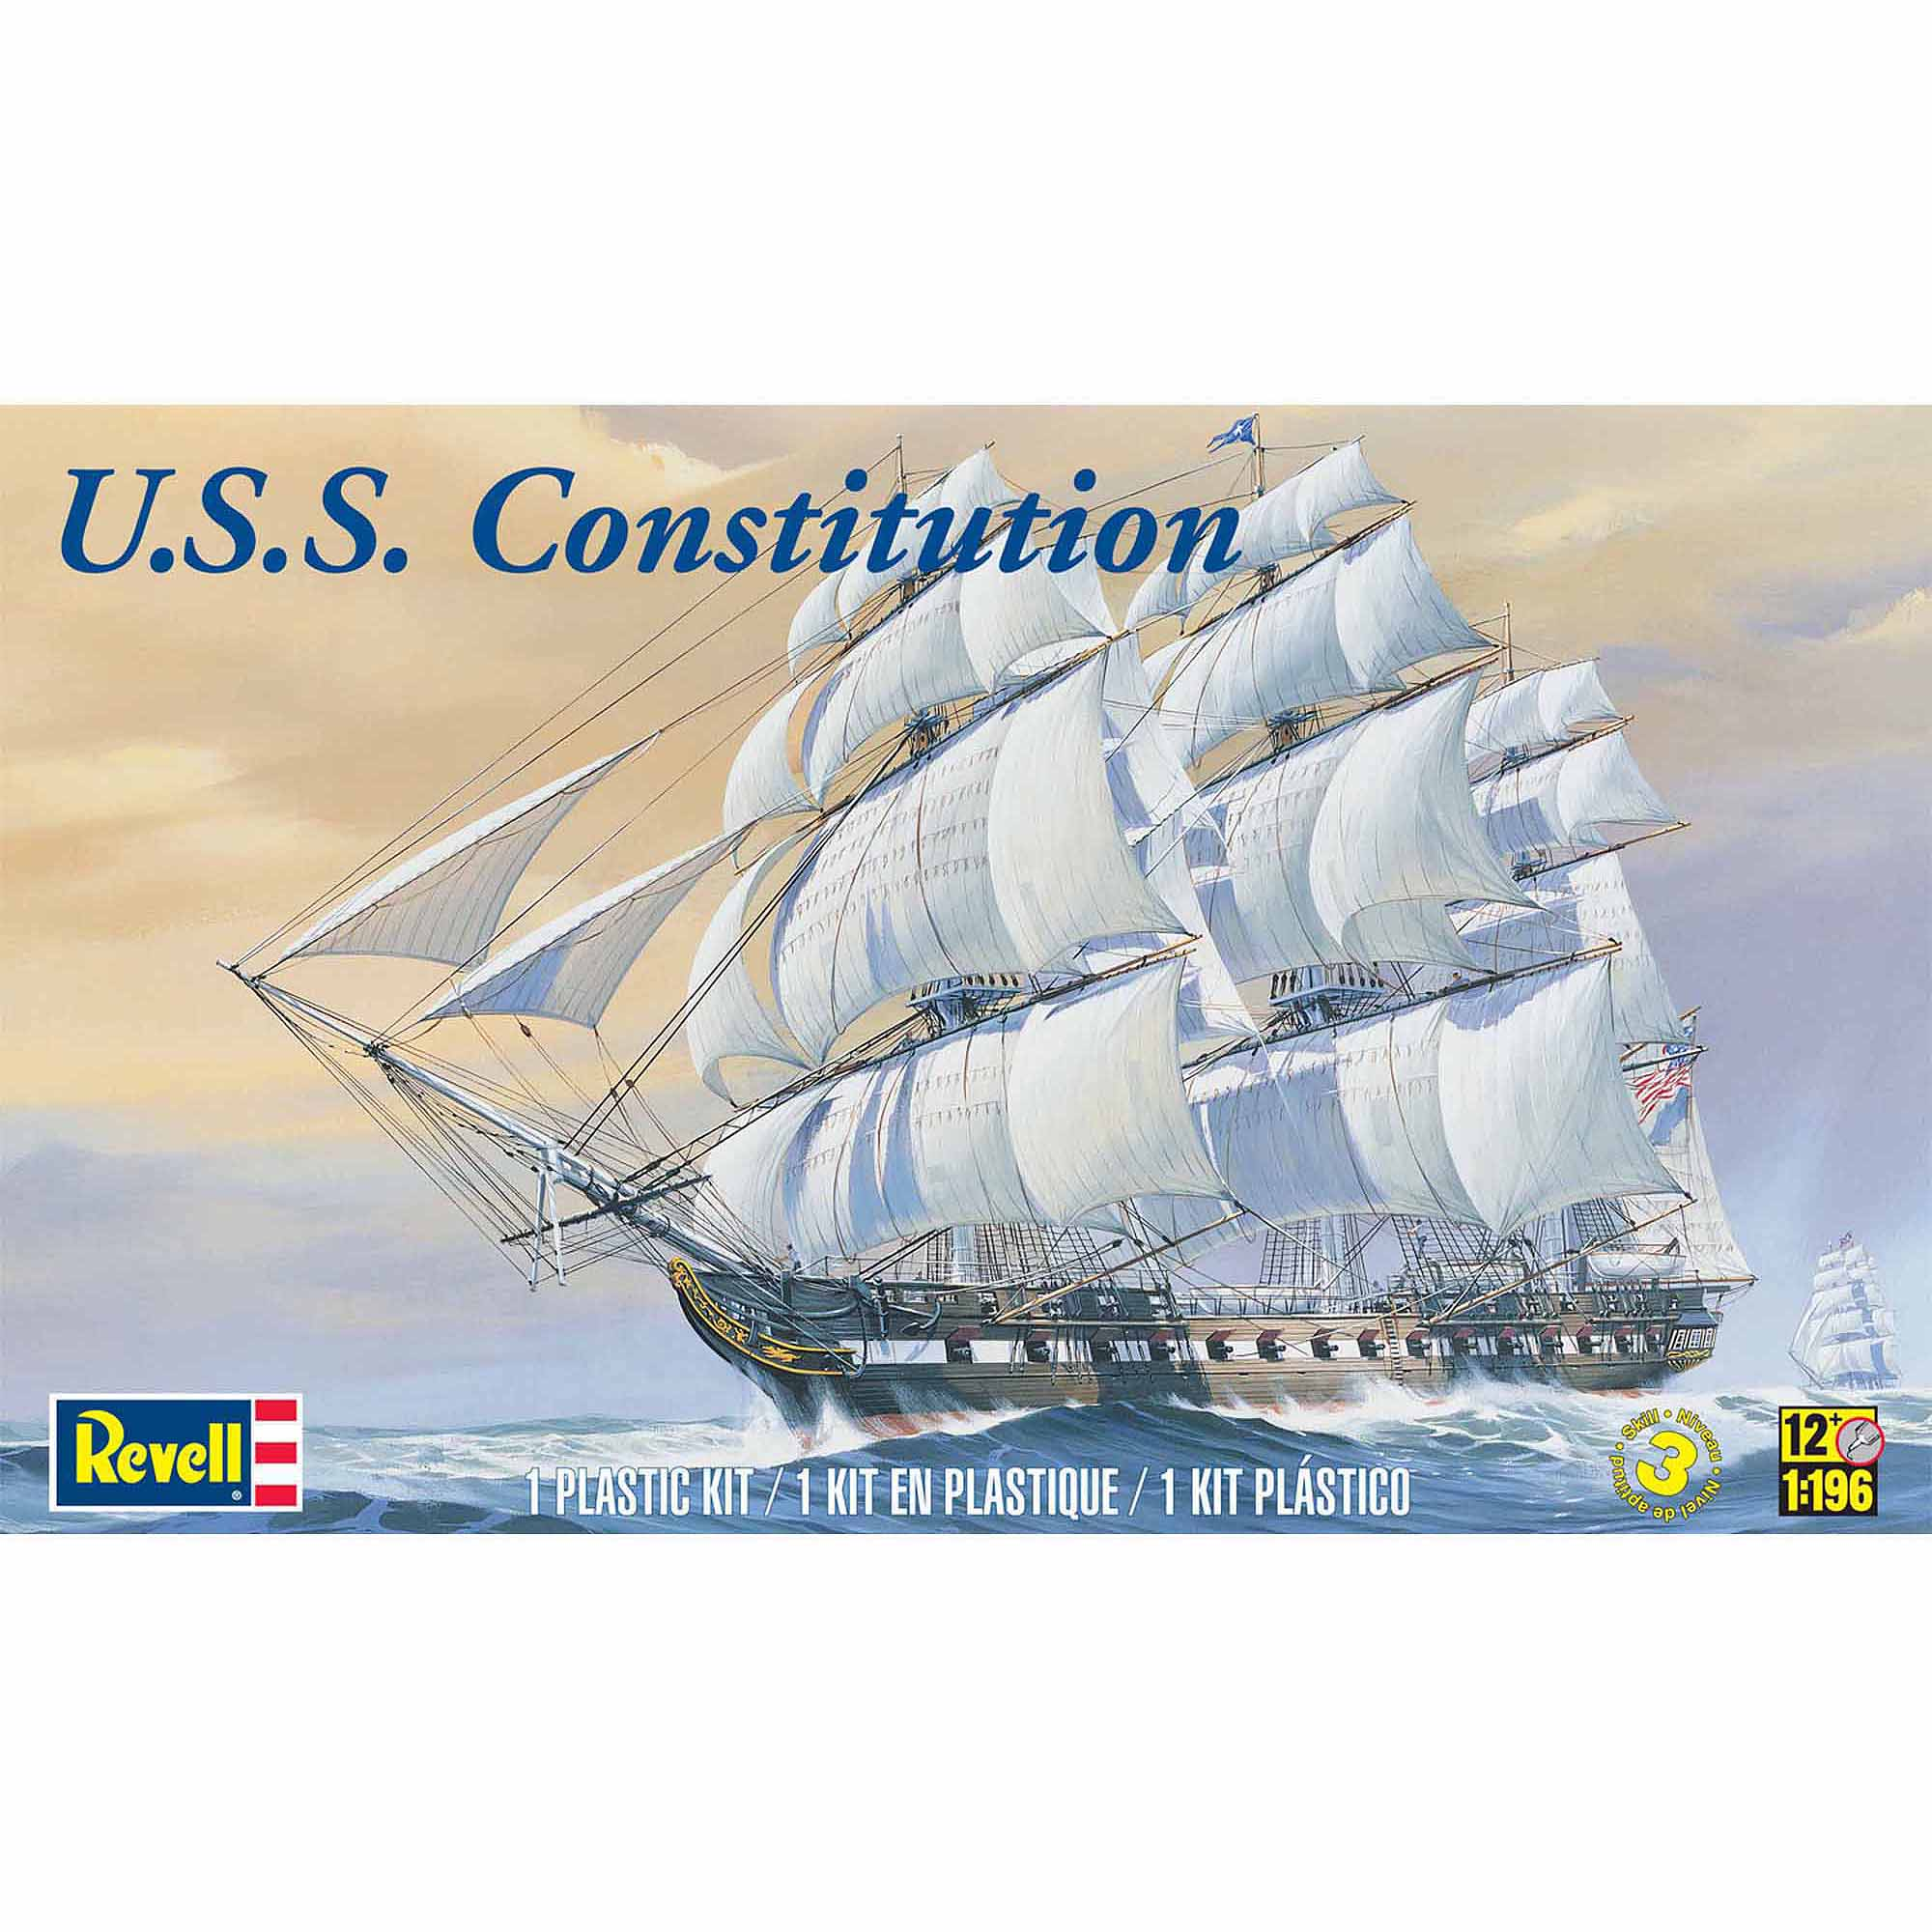 Revell 1:196 Scale USS Constitution Model Kit